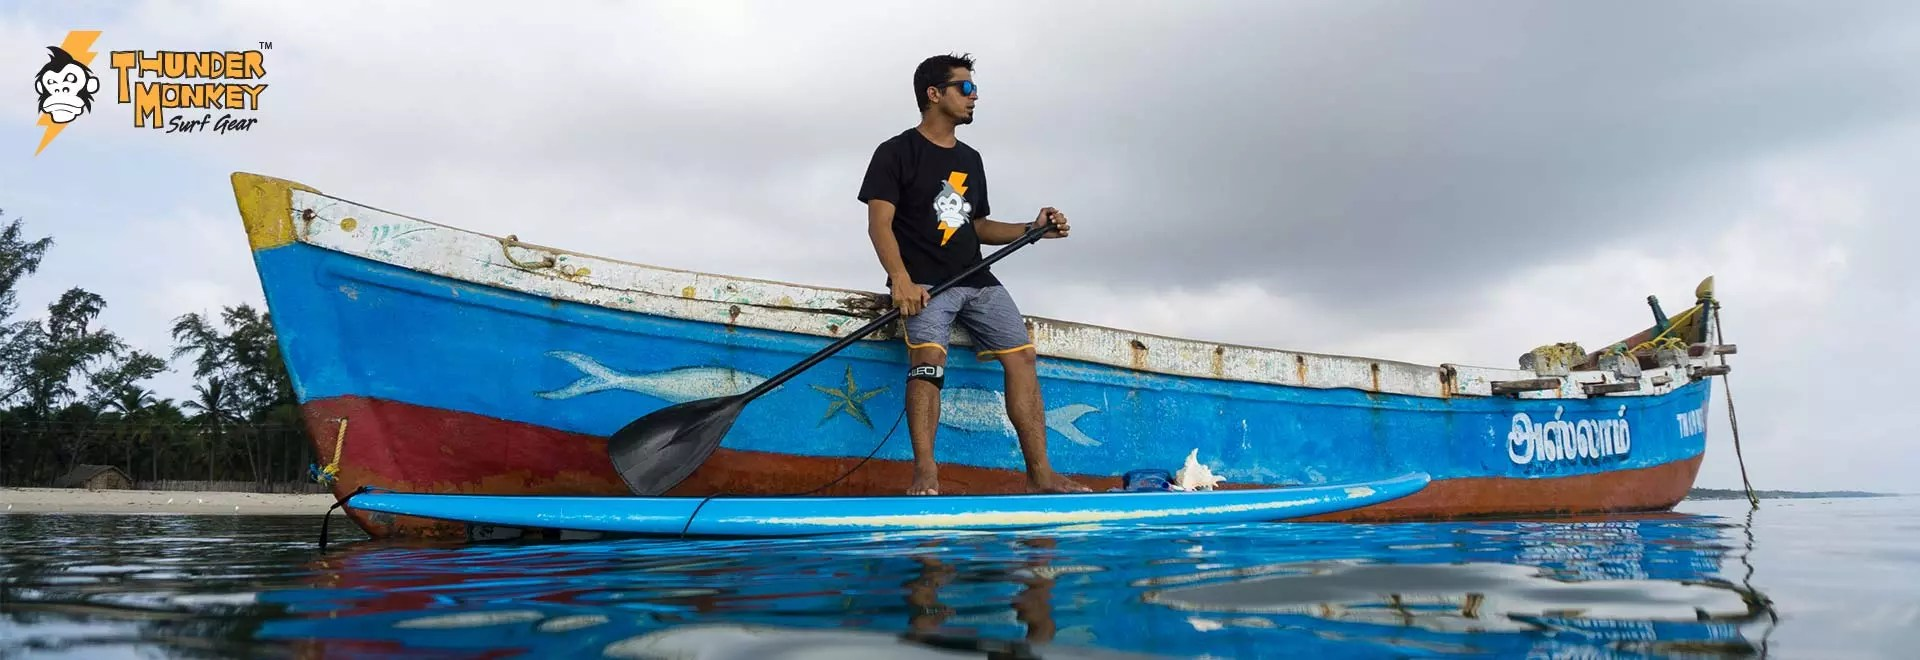 Thunder Monkey Surf Gear - India's Own Surf Brand